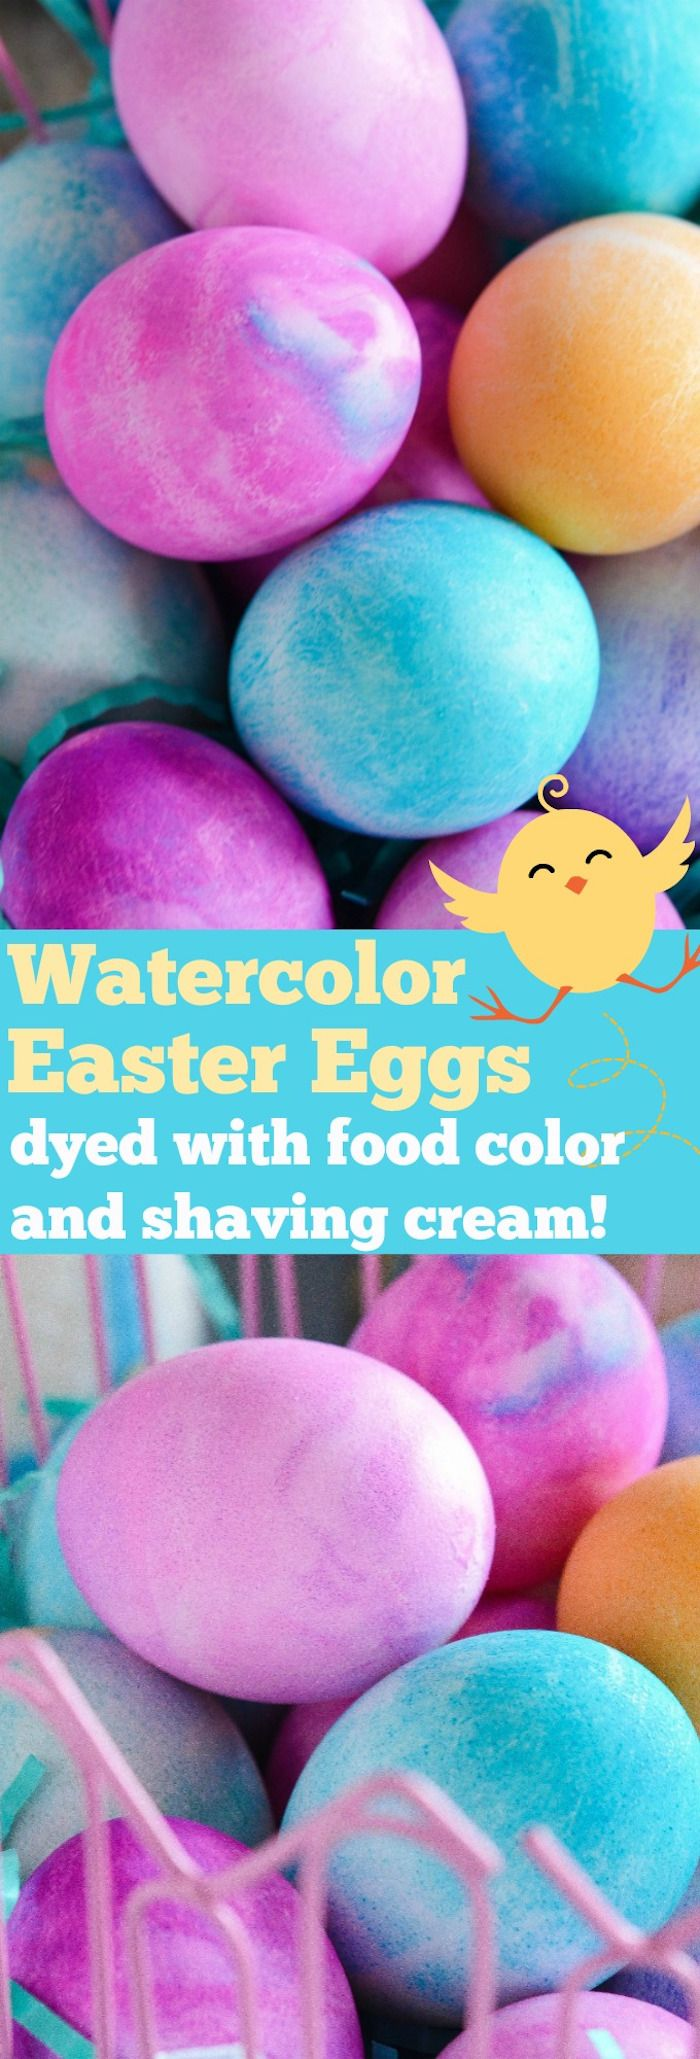 247 best images about Easter Treats on Pinterest | Nests, Easter ...